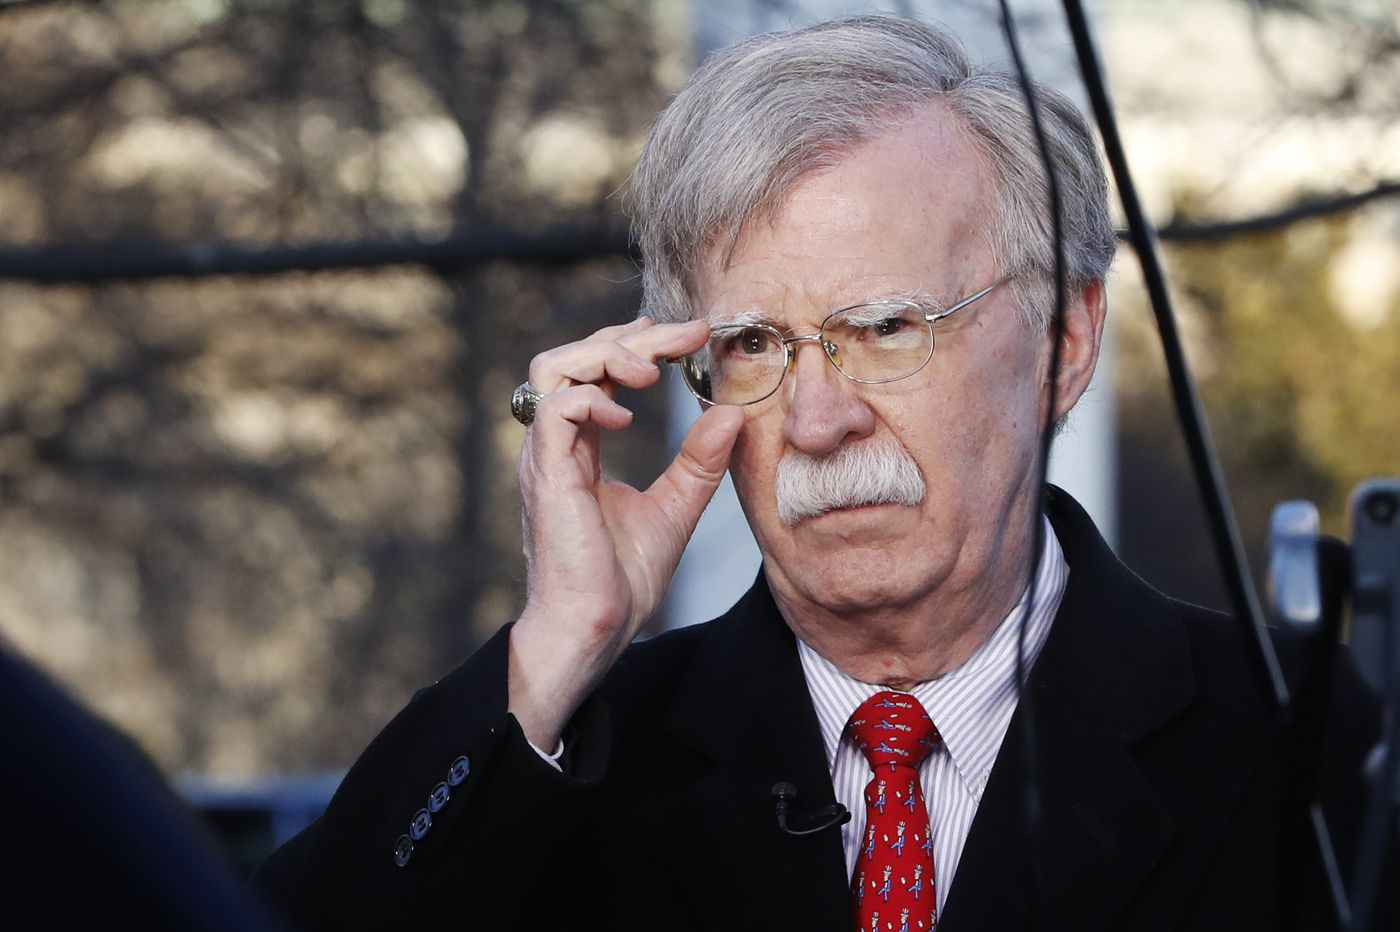 North Korea issues mild criticism of Bolton over media interview